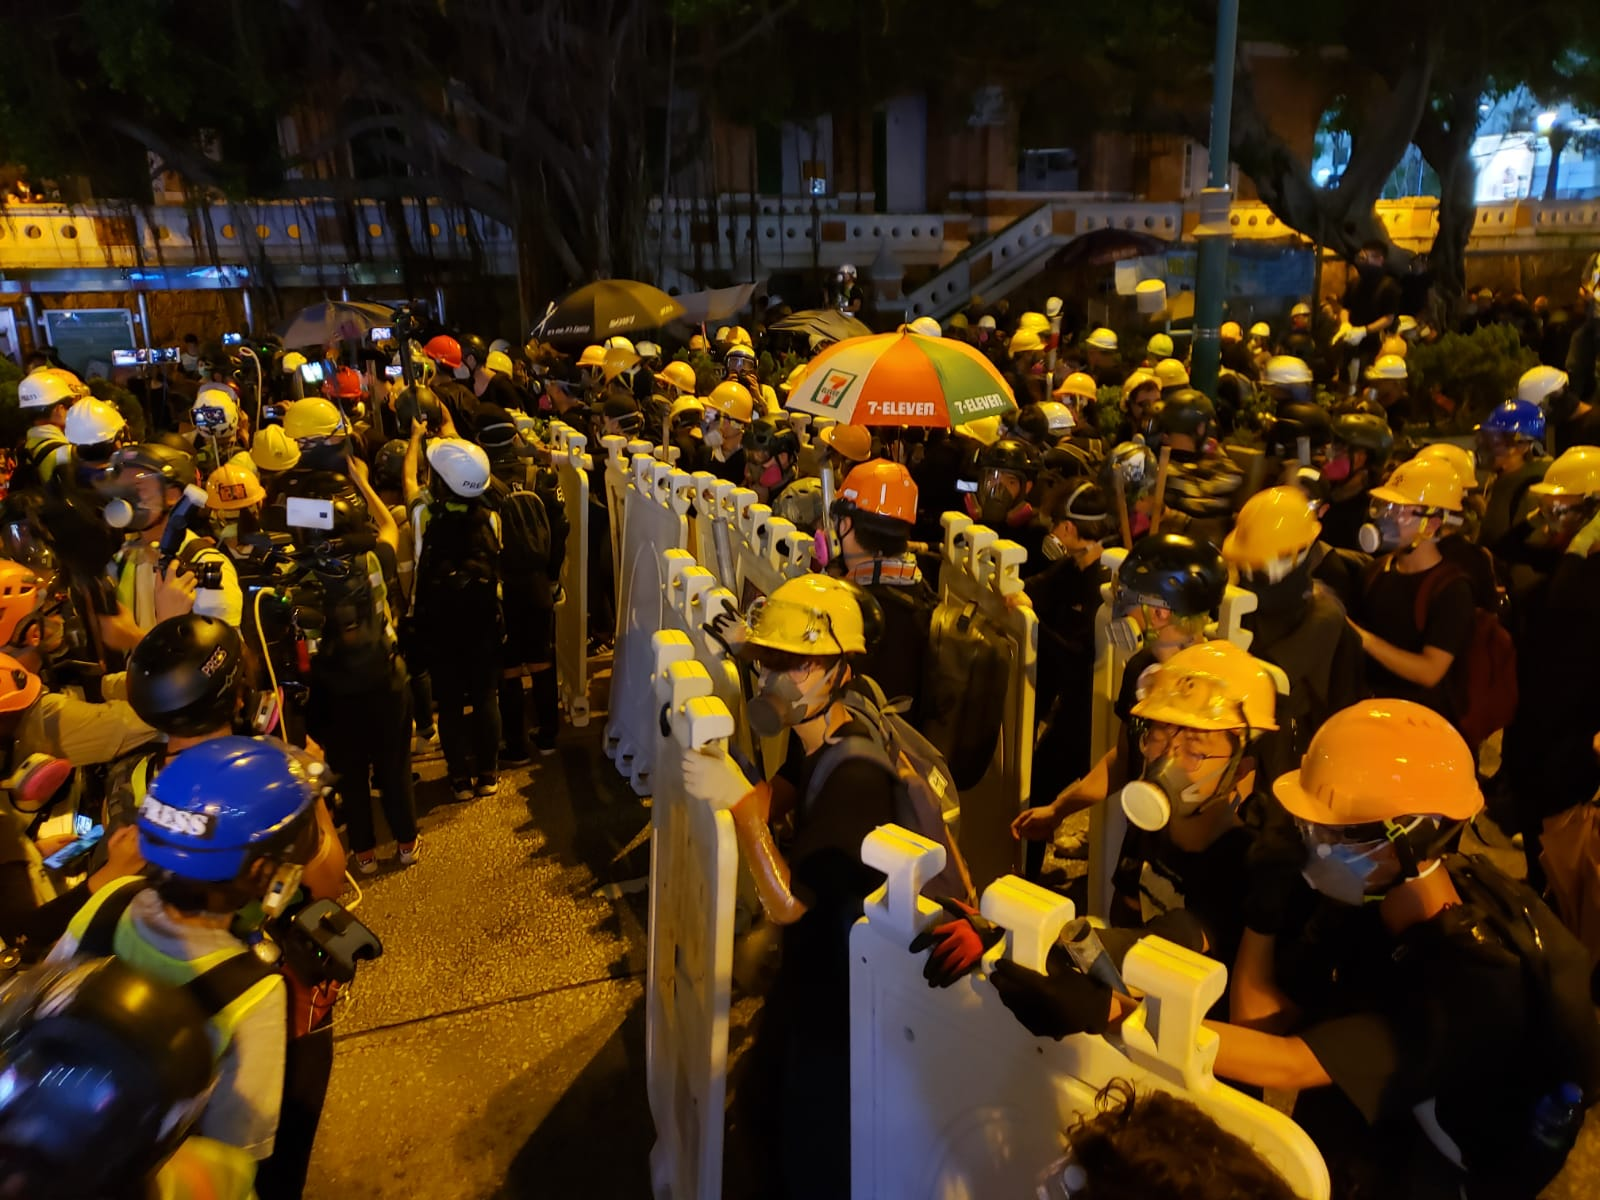 Protesters erect plastic street barriers as shields as they face off with police.